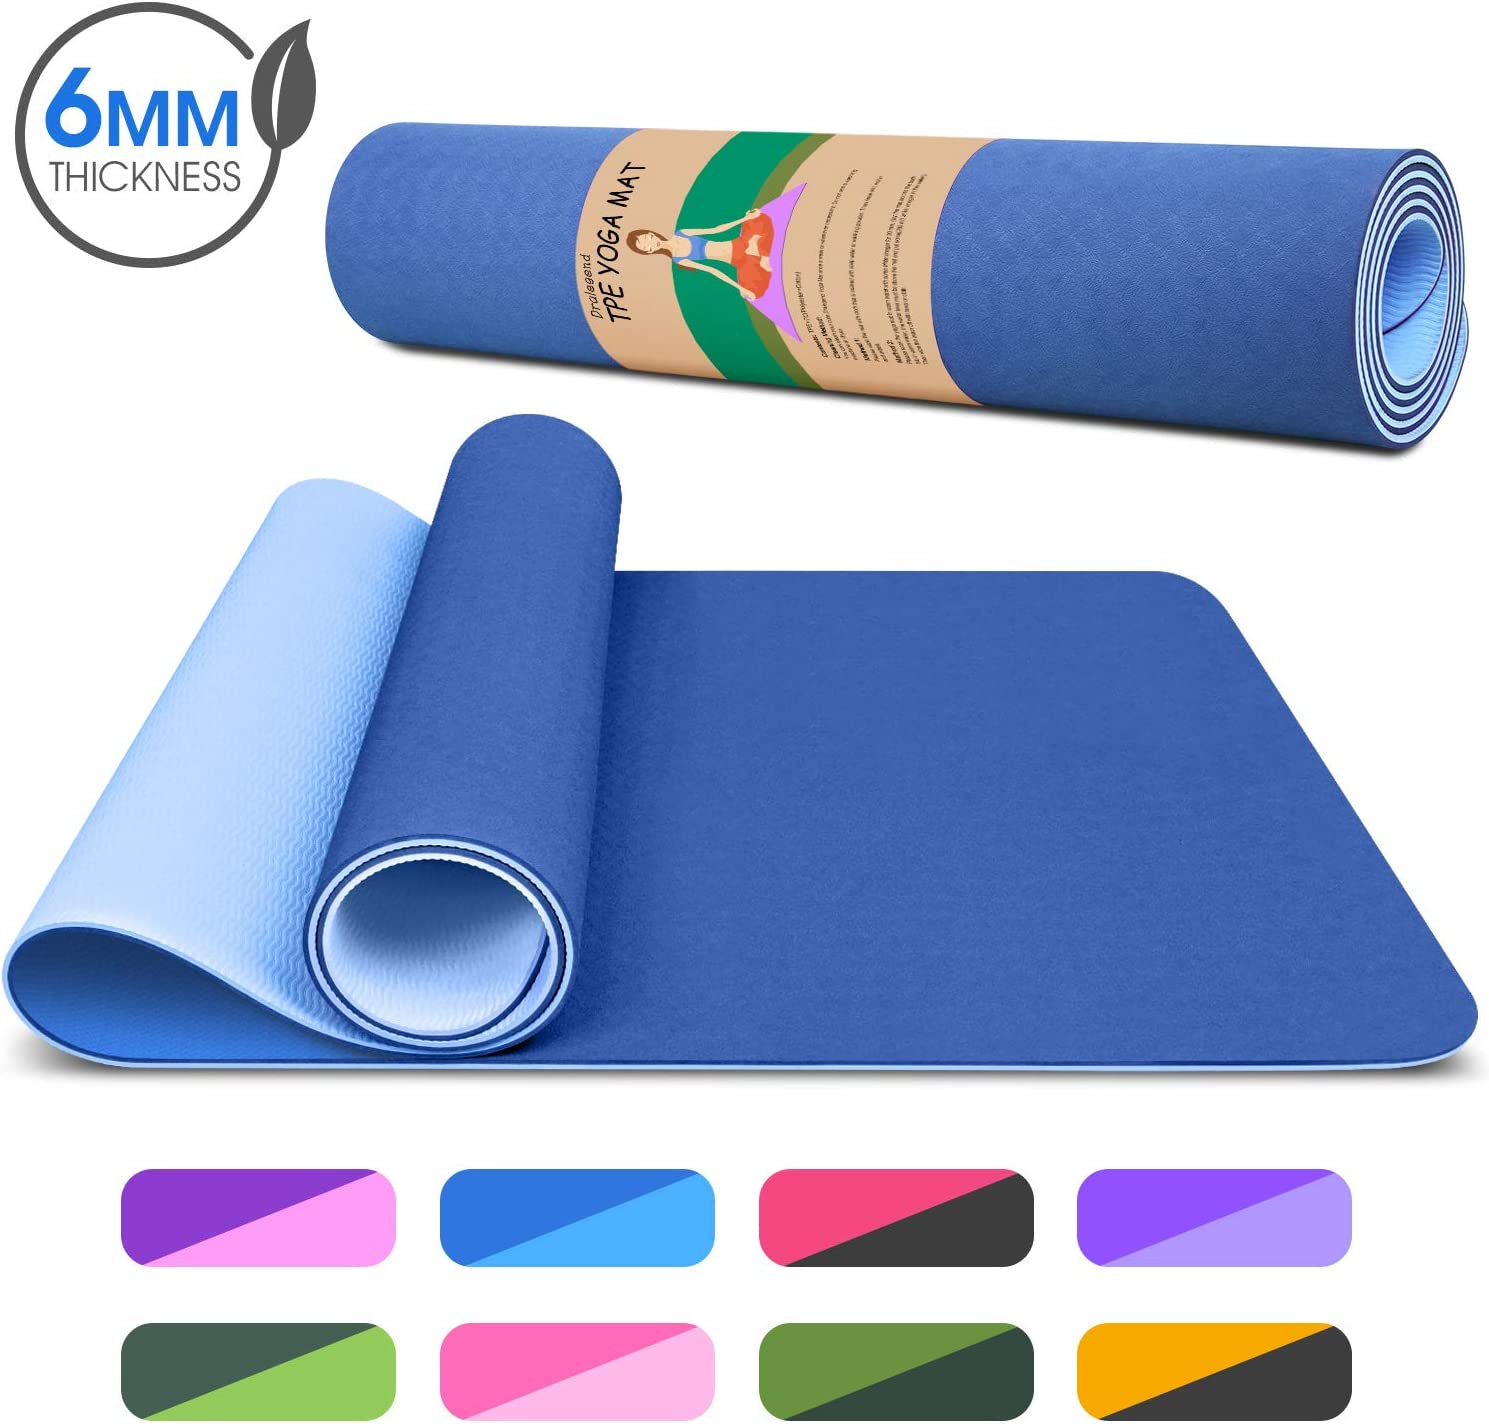 Anti Sweat High Density Non-Slip Workout Mat for Yoga Classic 1//4 Inch Pilates /& Exercises Dralegend Yoga Mat Exercise Fitness Mat Tear Proof